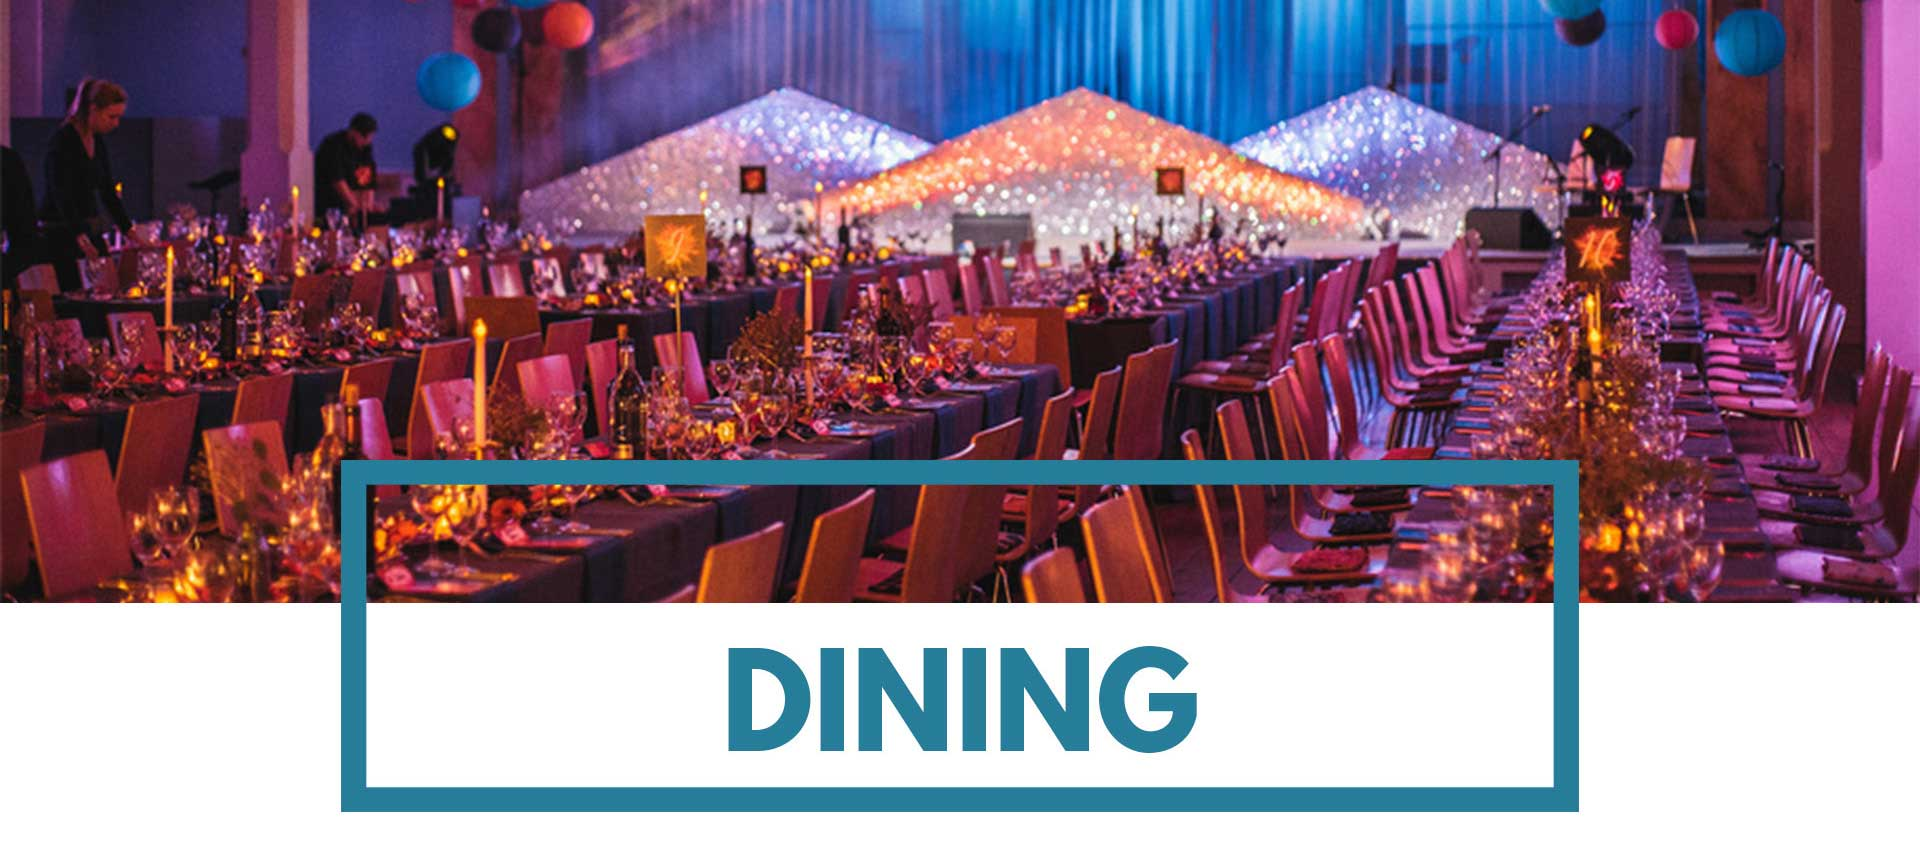 Banquet style dining and event lighting at St Mary's Venue Hire, London